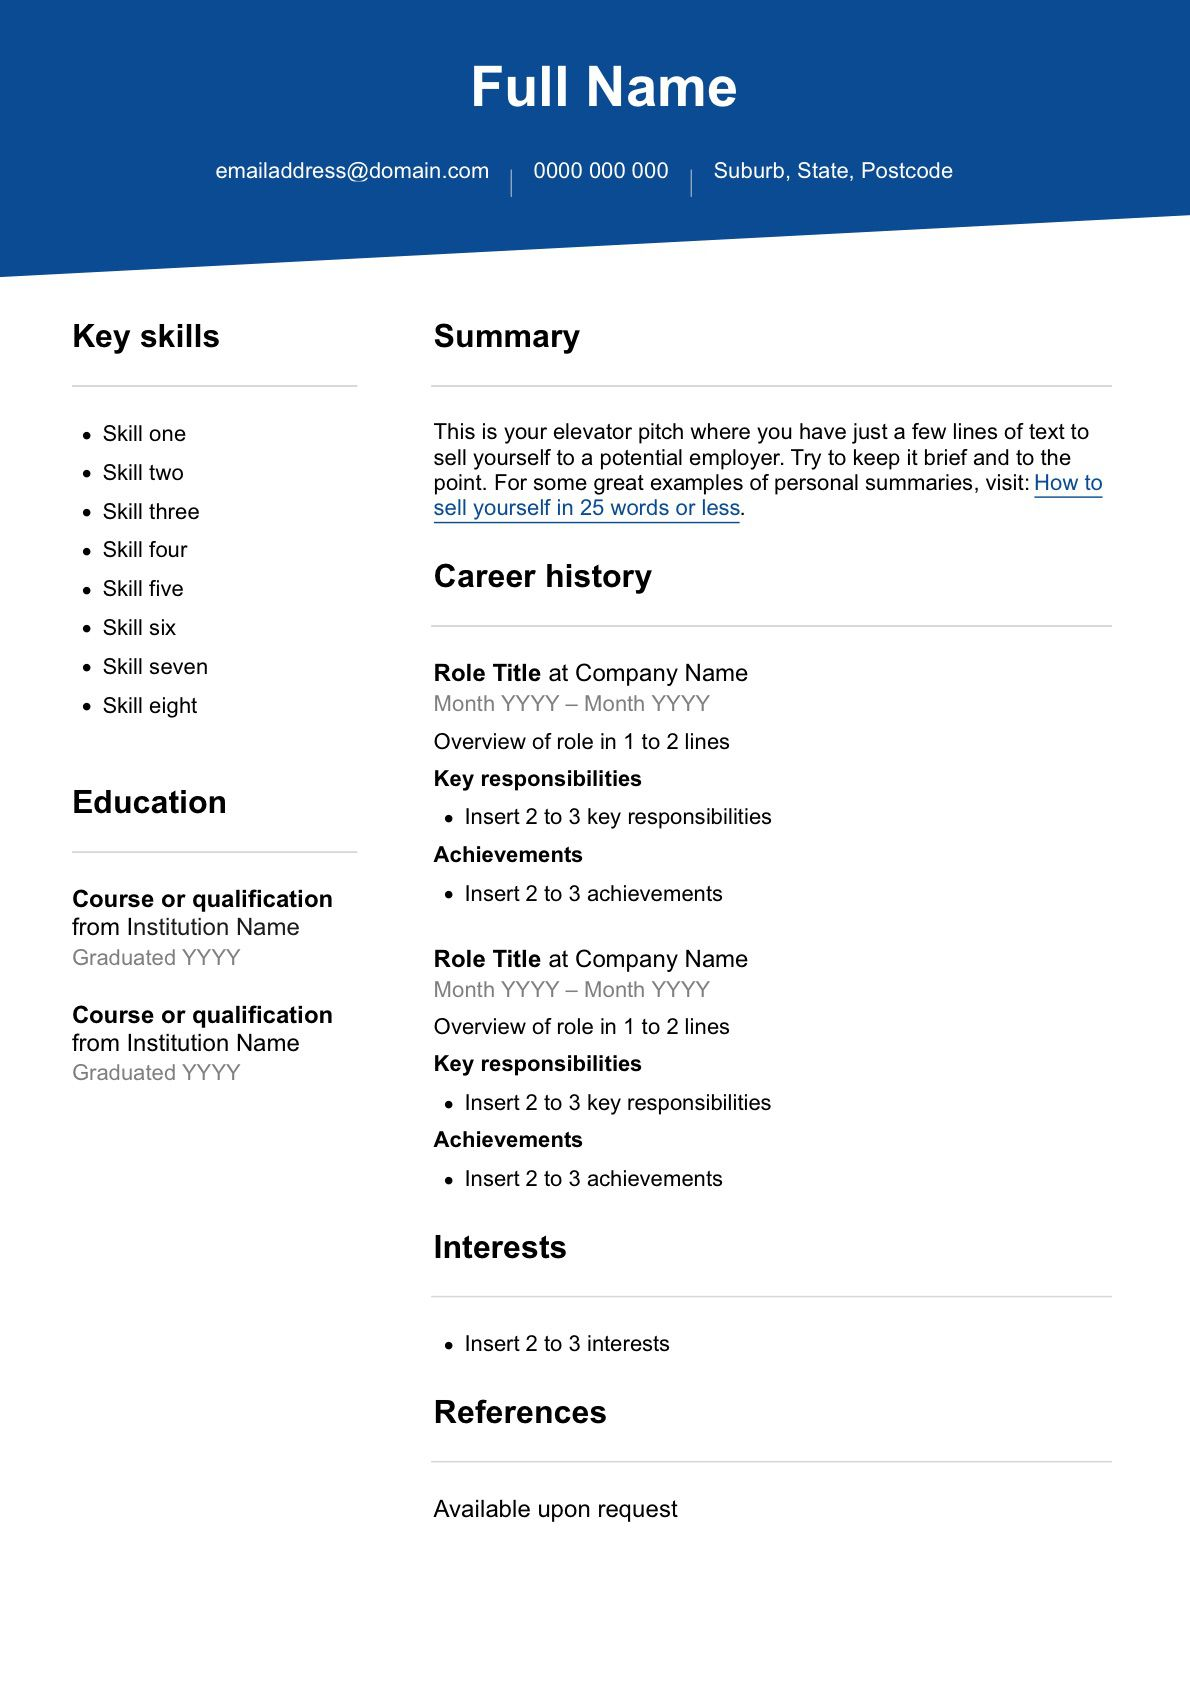 009 Excellent Part Time Job Resume Template High Definition  Student Summary ExampleFull